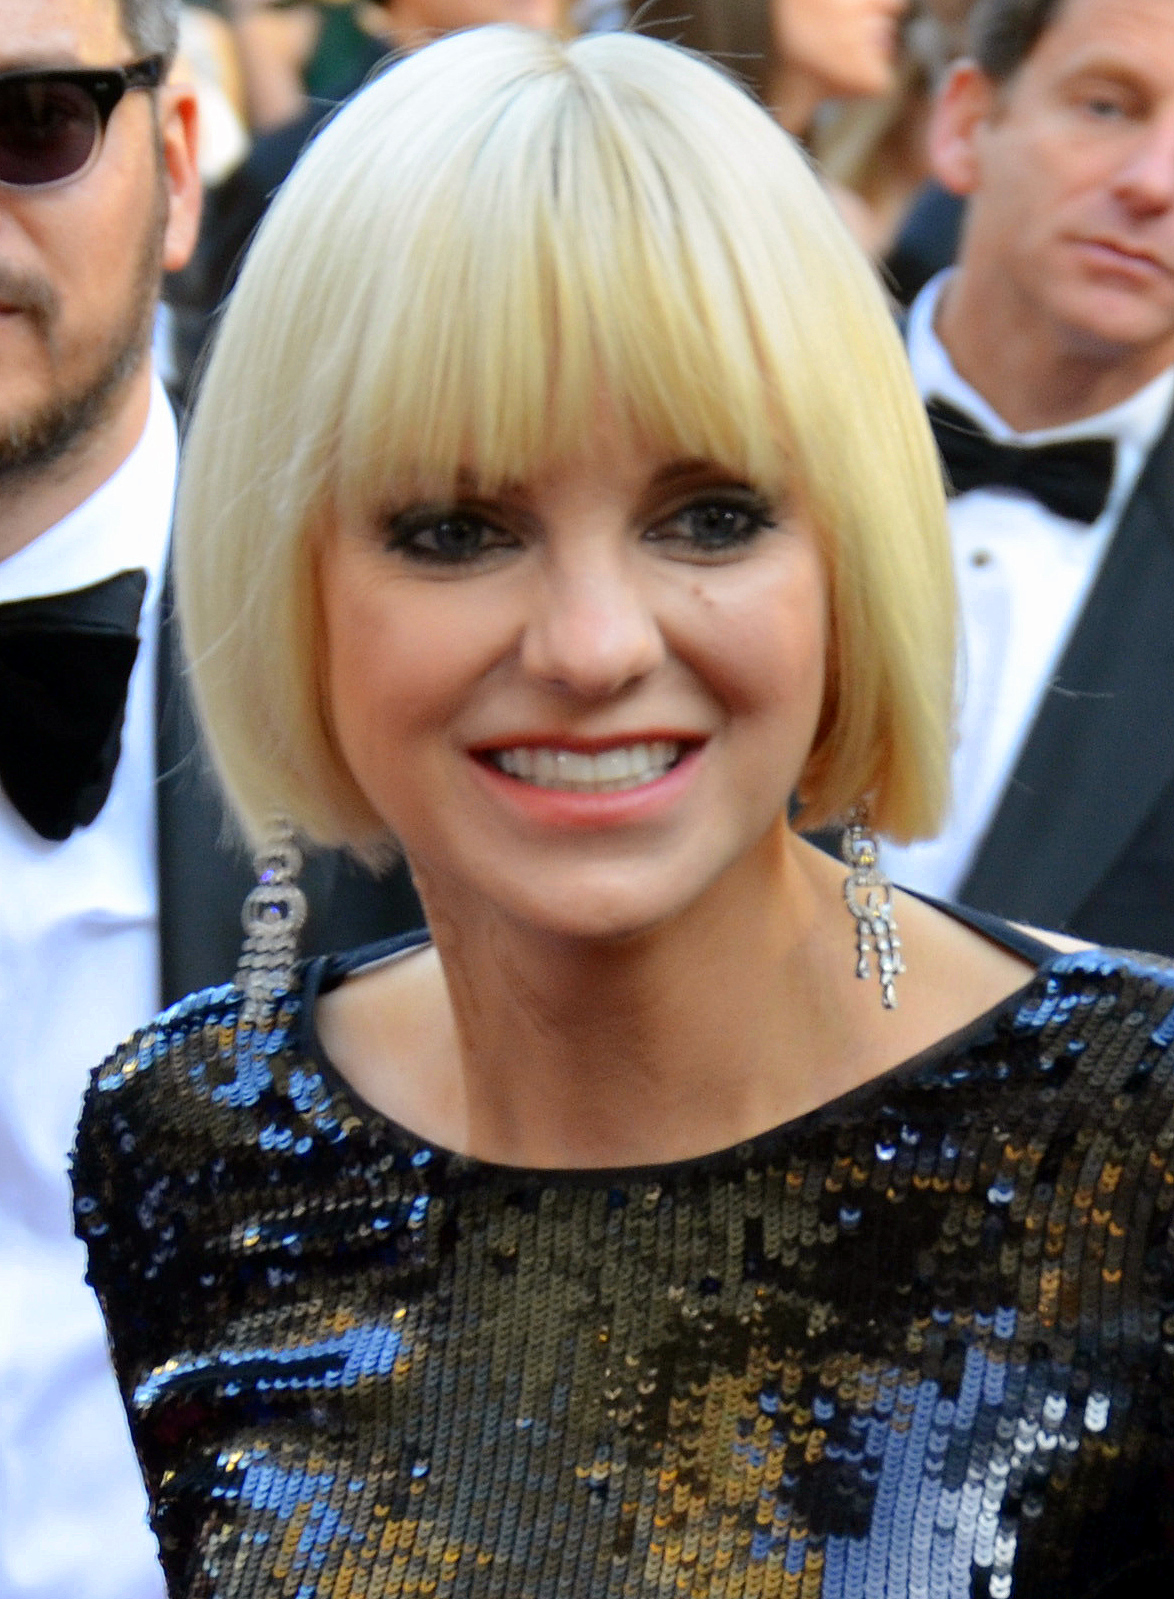 who is anna faris dating 2012 Olivia munn texts anna faris to let her know she's not dating chris pratt olivia munn texts anna faris to let her know she's not dating chris pratt.